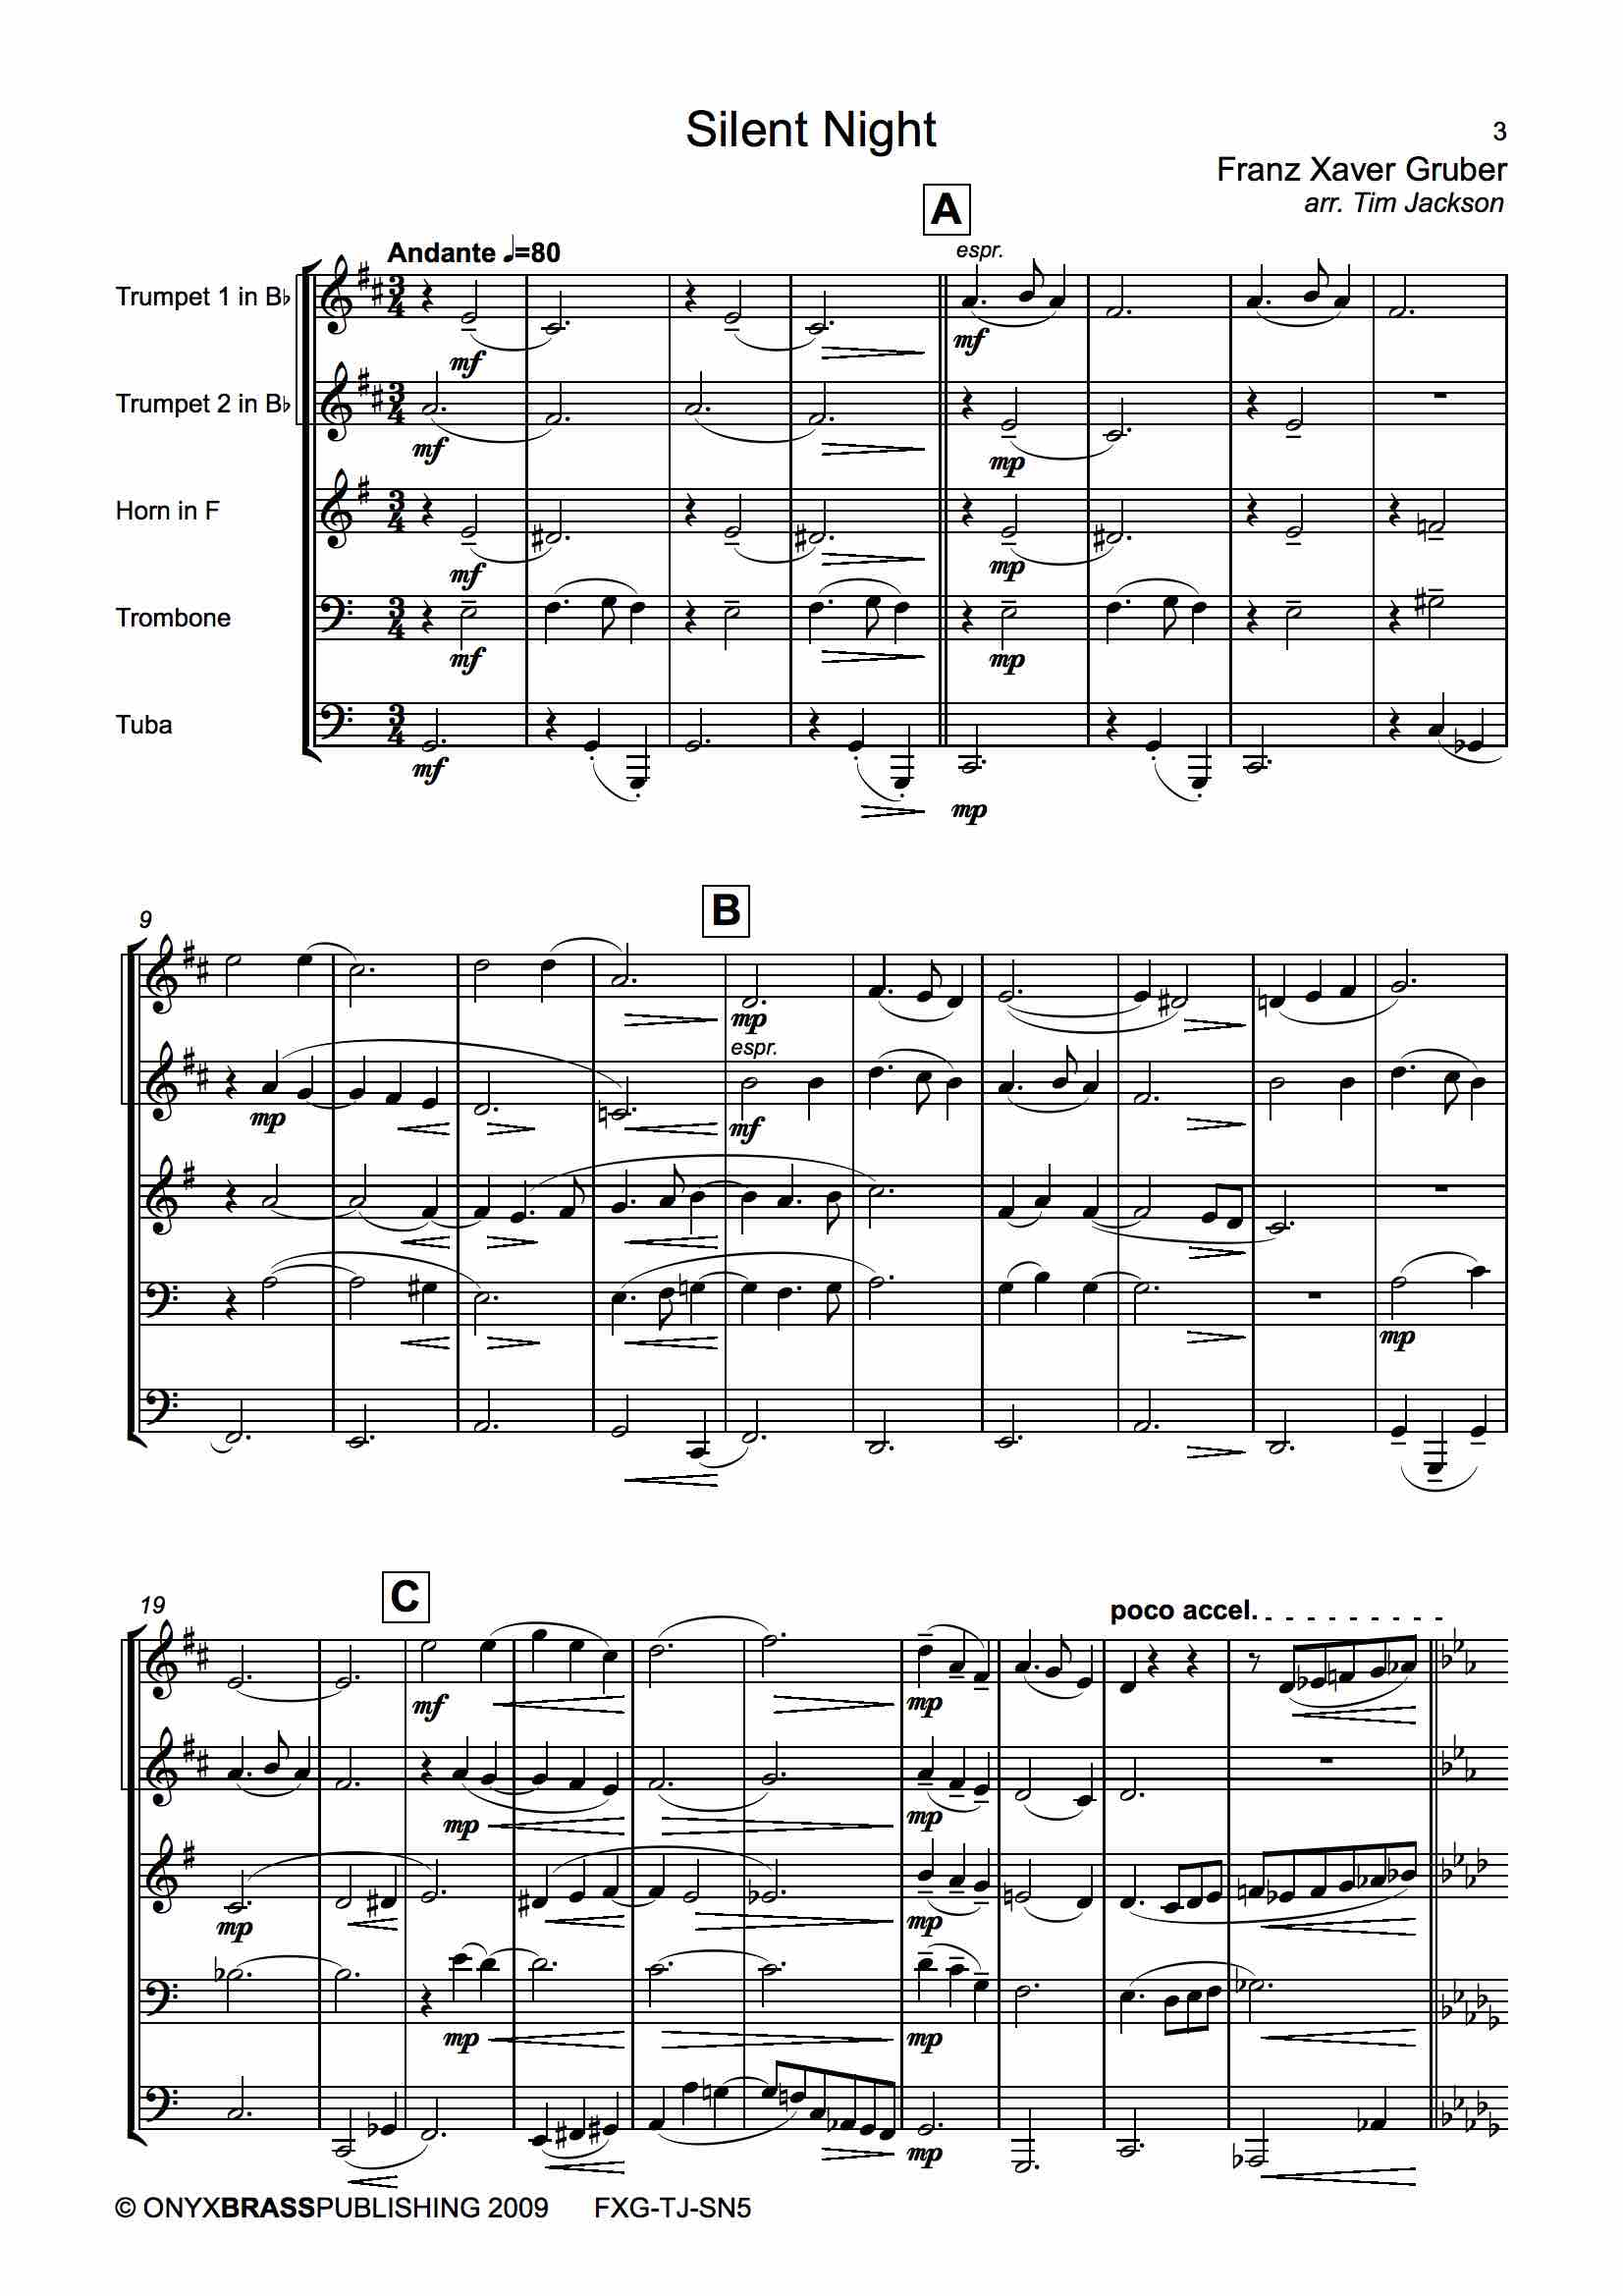 Silent Night - example page